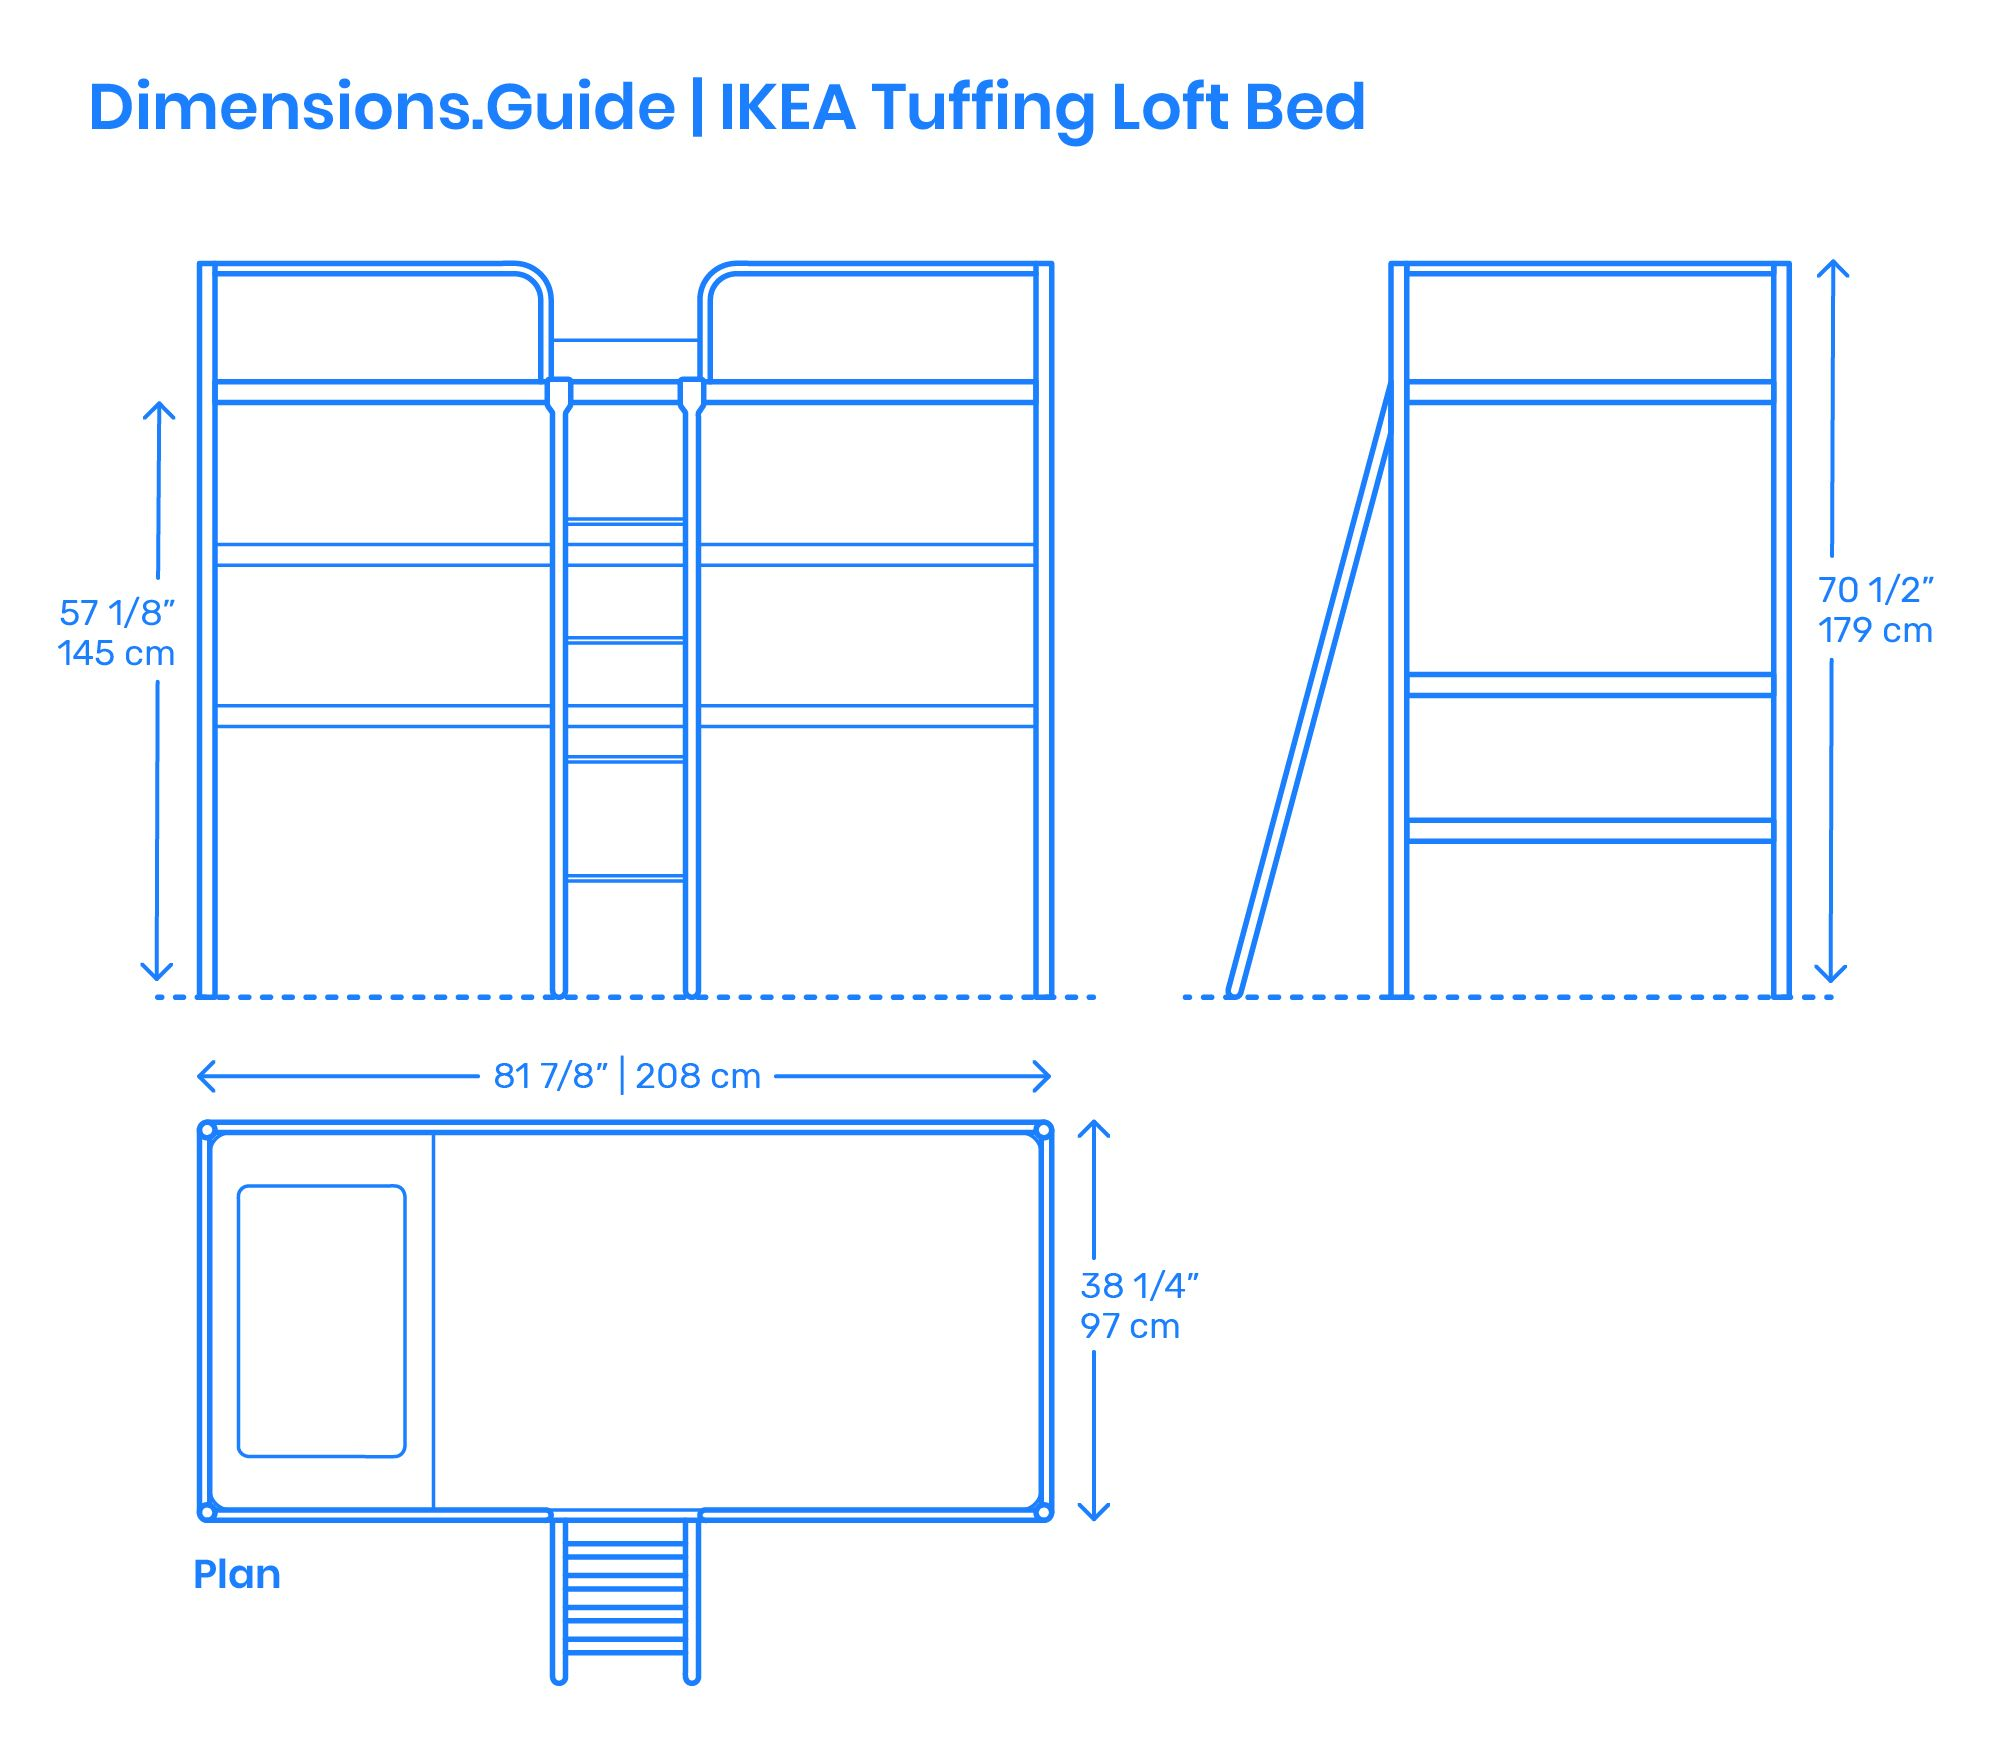 The IKEA Tuffing Loft Bed is a steel frame loft bed with